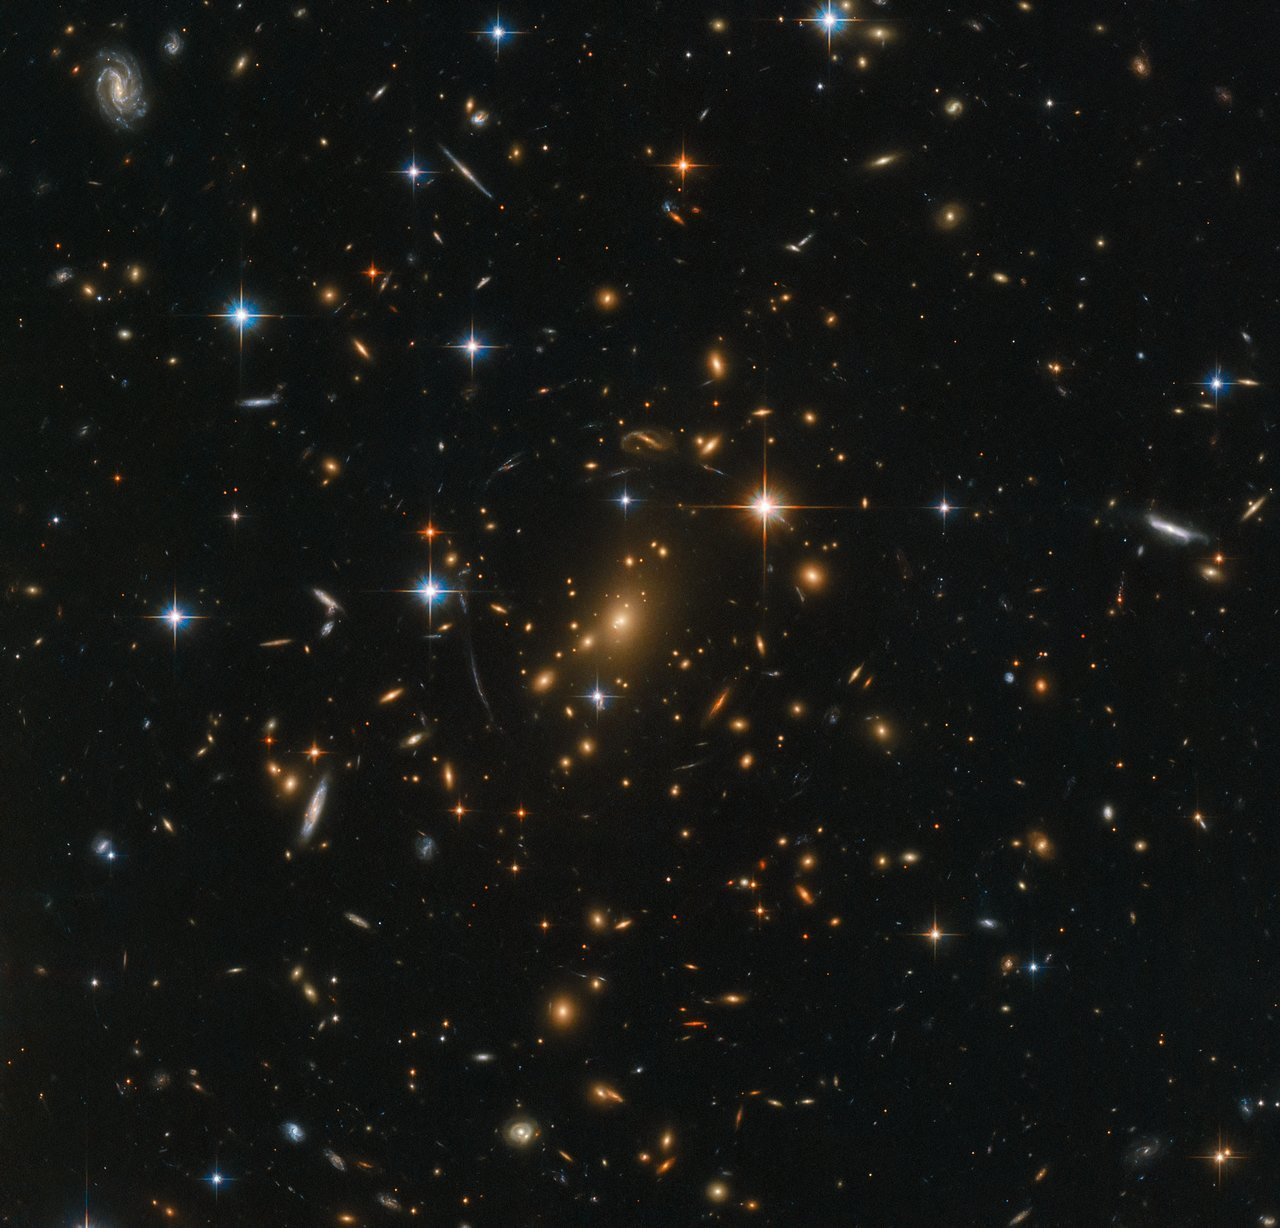 image hubble s treasure chest of galaxies